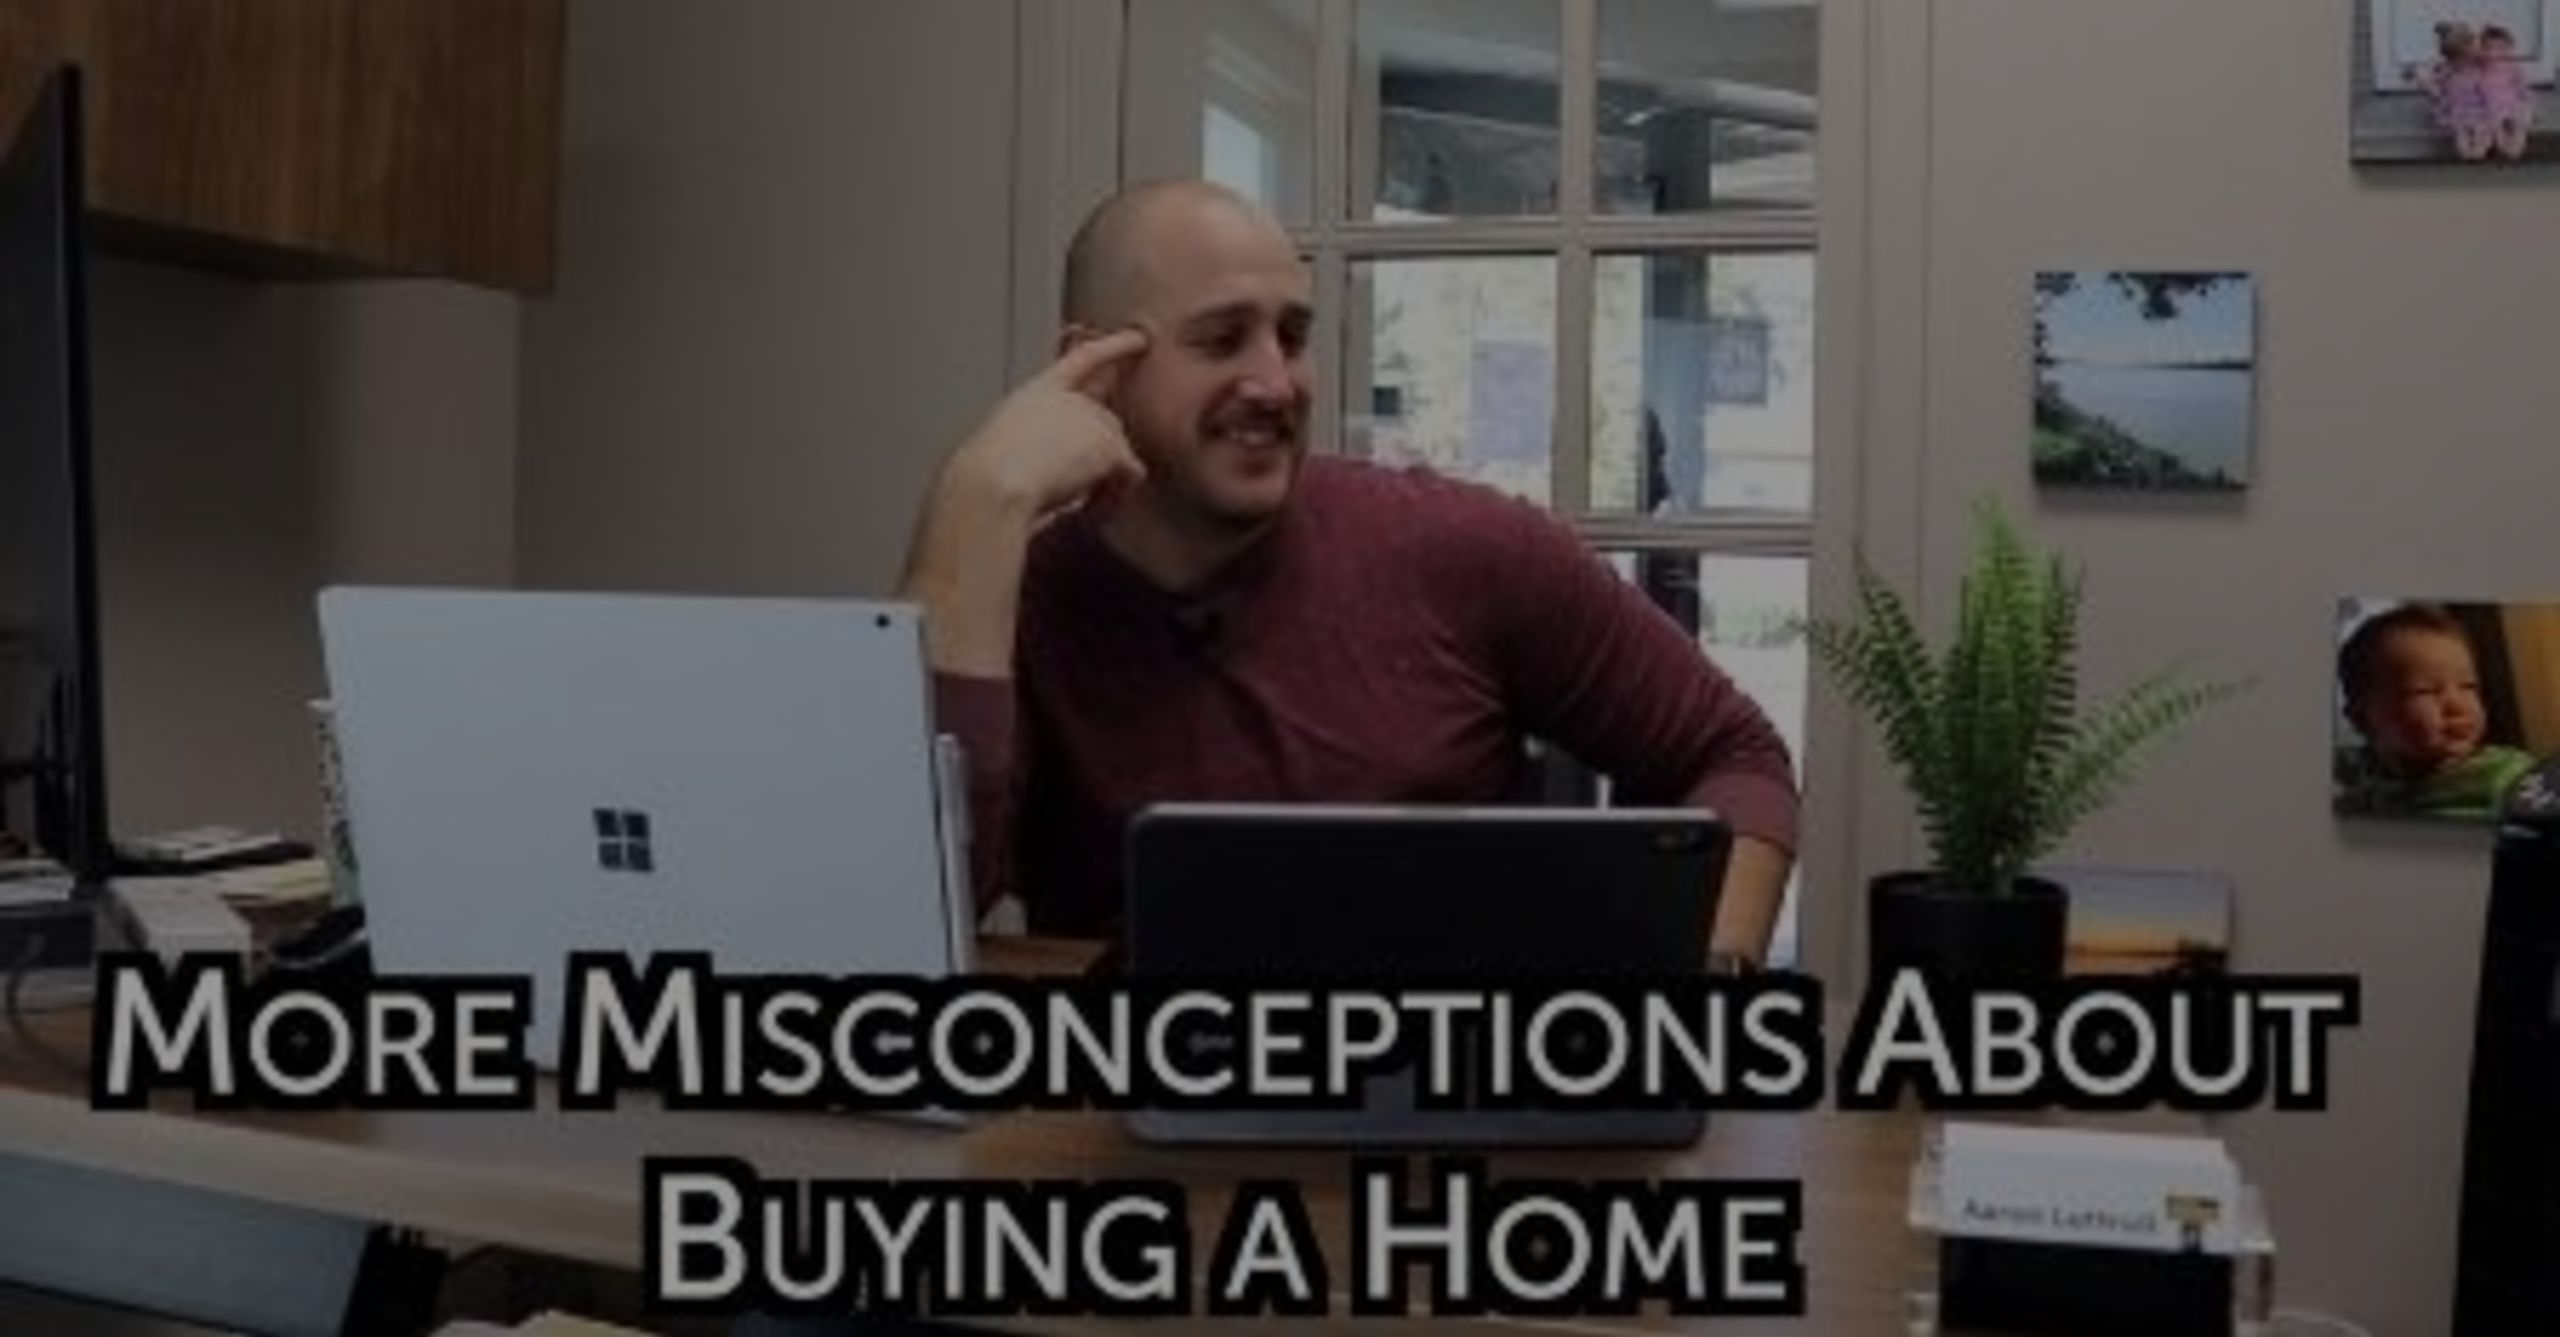 More Misconceptions About Buying a Home